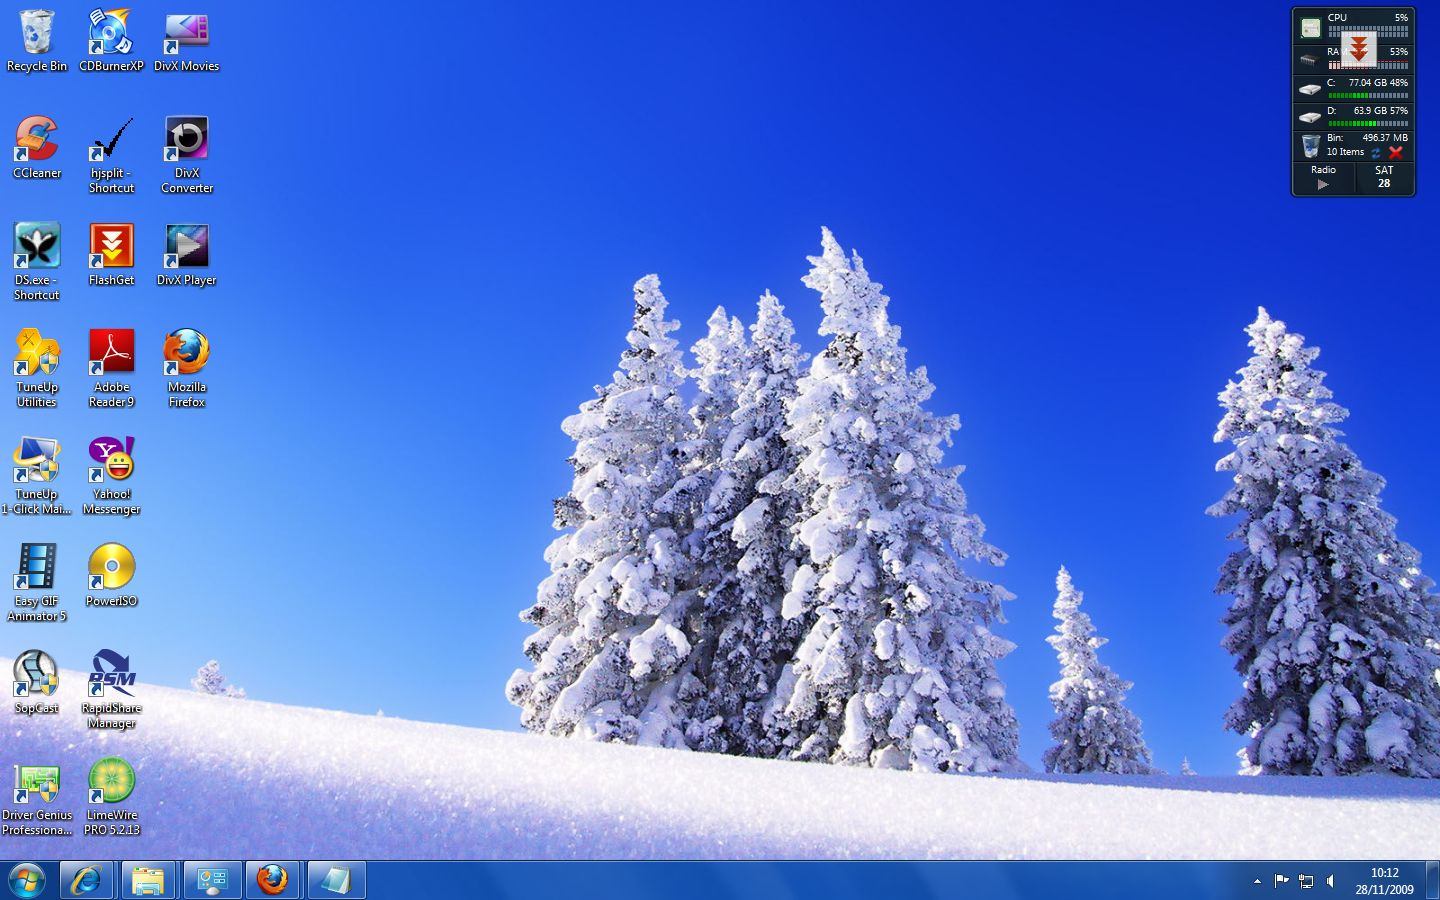 Free Windows Wallpaper And Themes